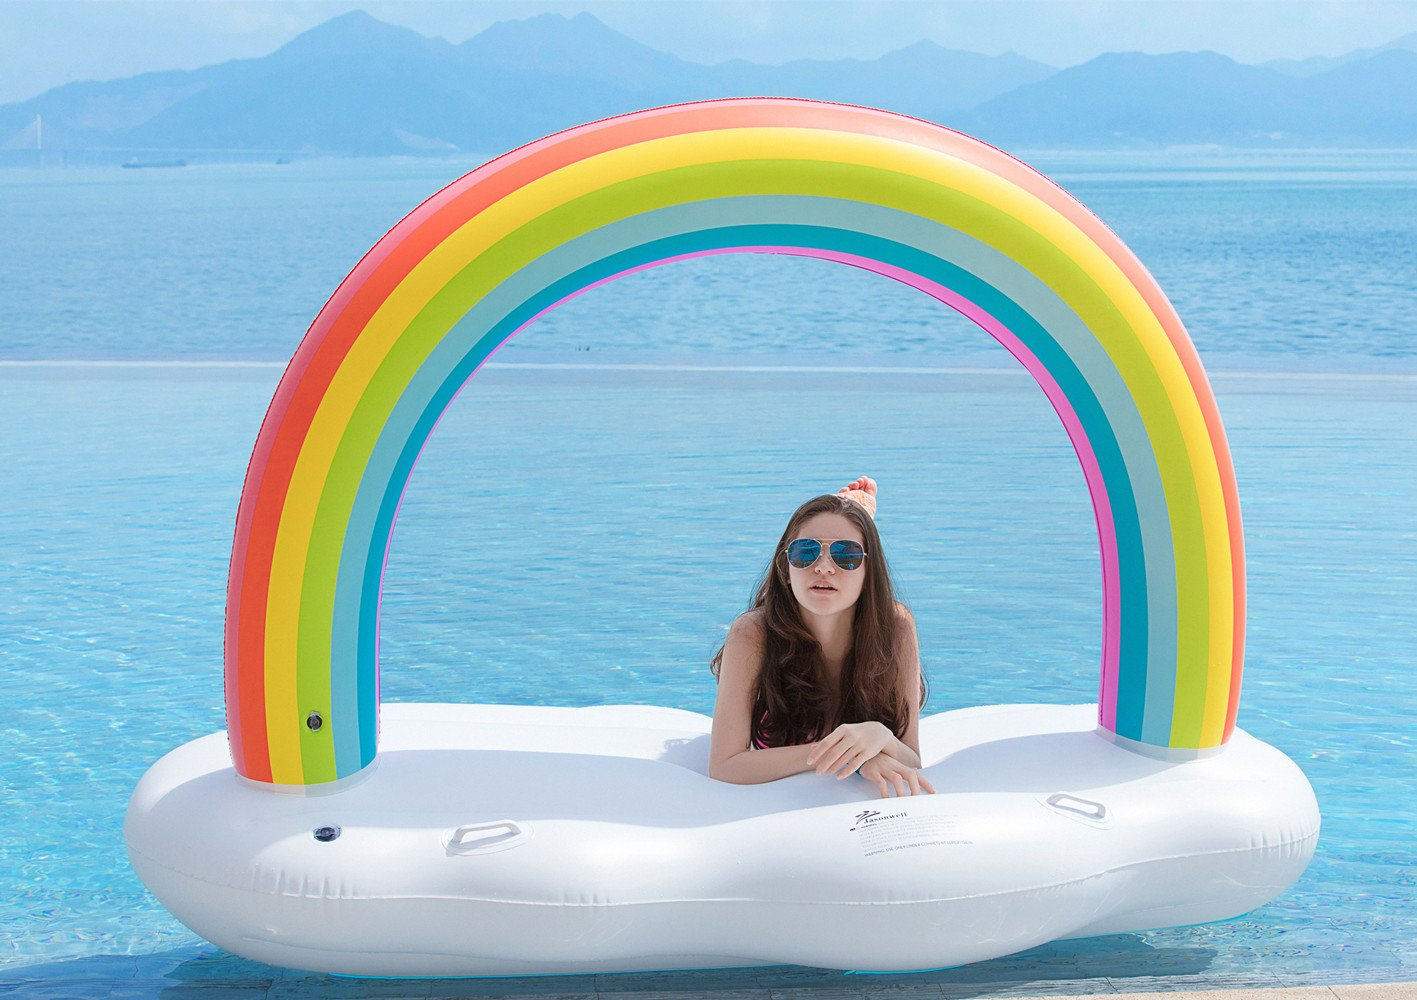 Inflatable Rainbow Cloud Pool Float with Rapid Valves